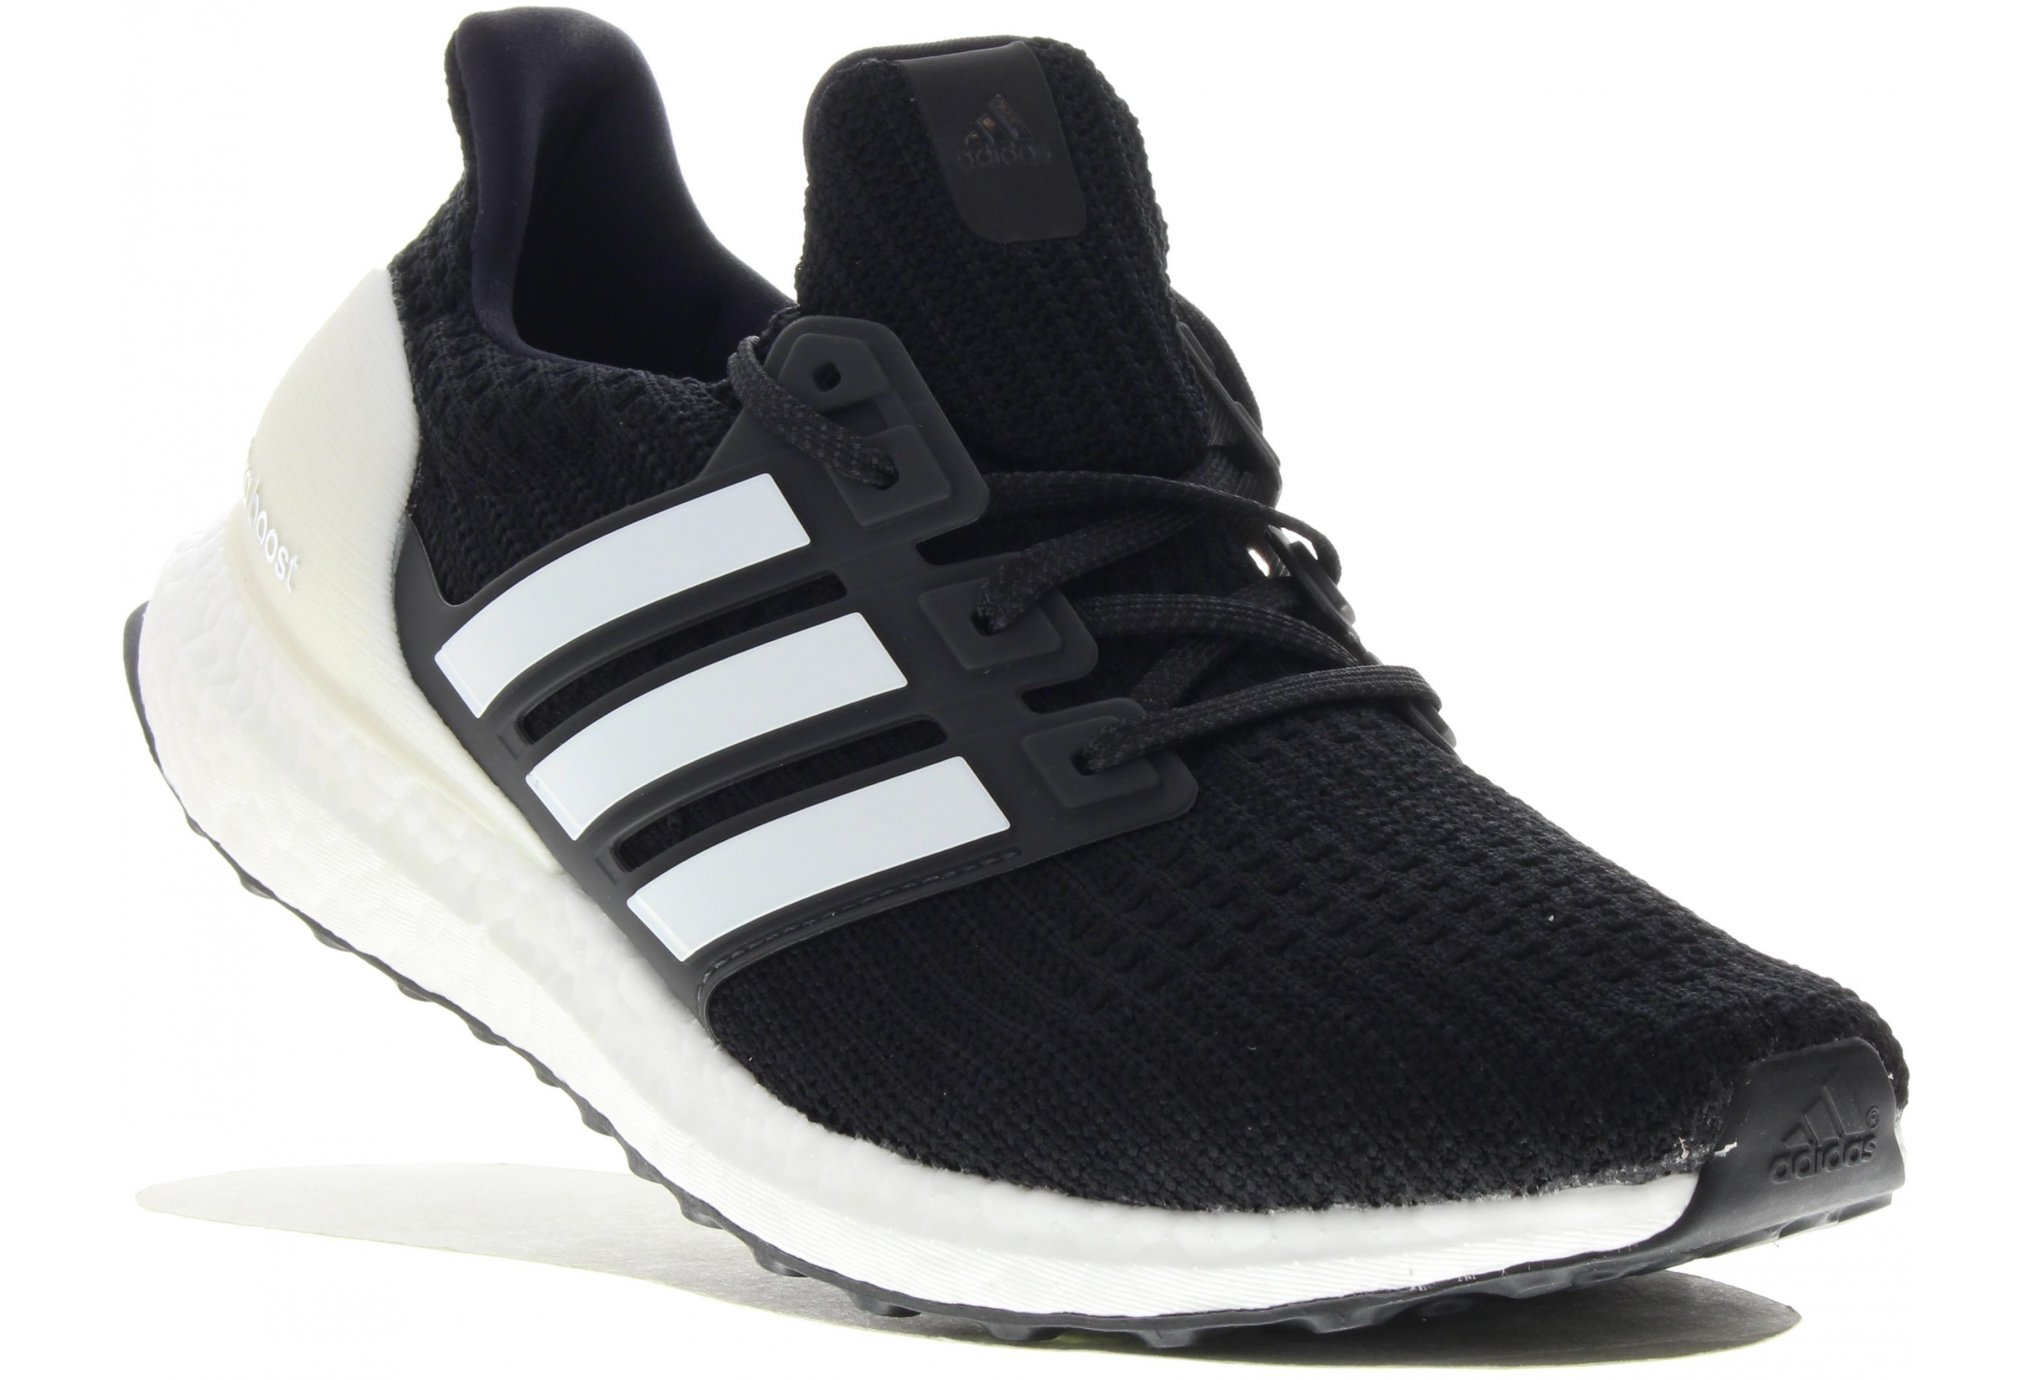 Adidas Ultraboost m chaussures homme